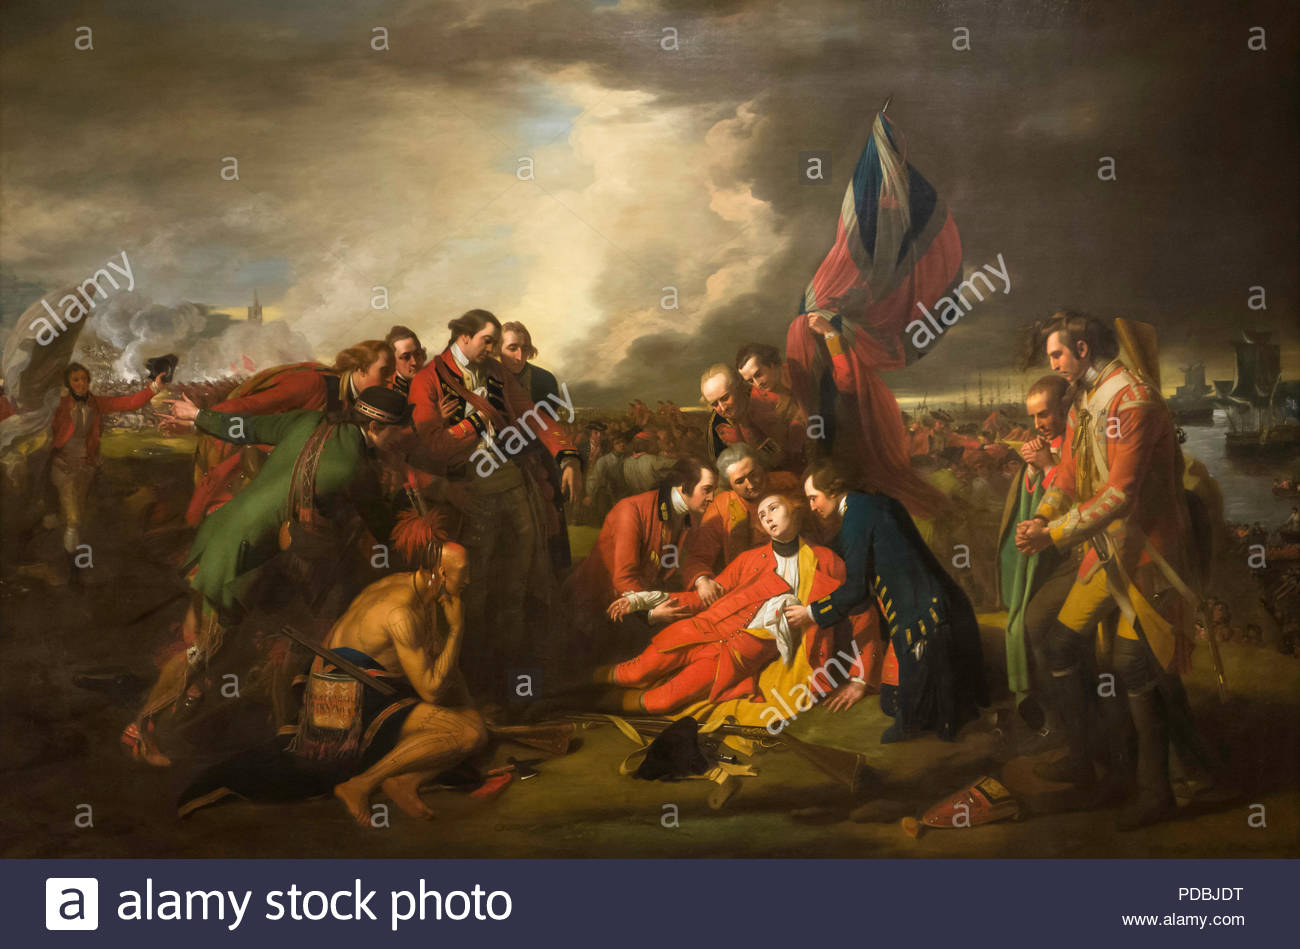 The Death of General Wolfe by Benjamin West oil on canvas painted 1776 Royal Ontario Museum ROM in Toronto Ontario CanadaStock Photo